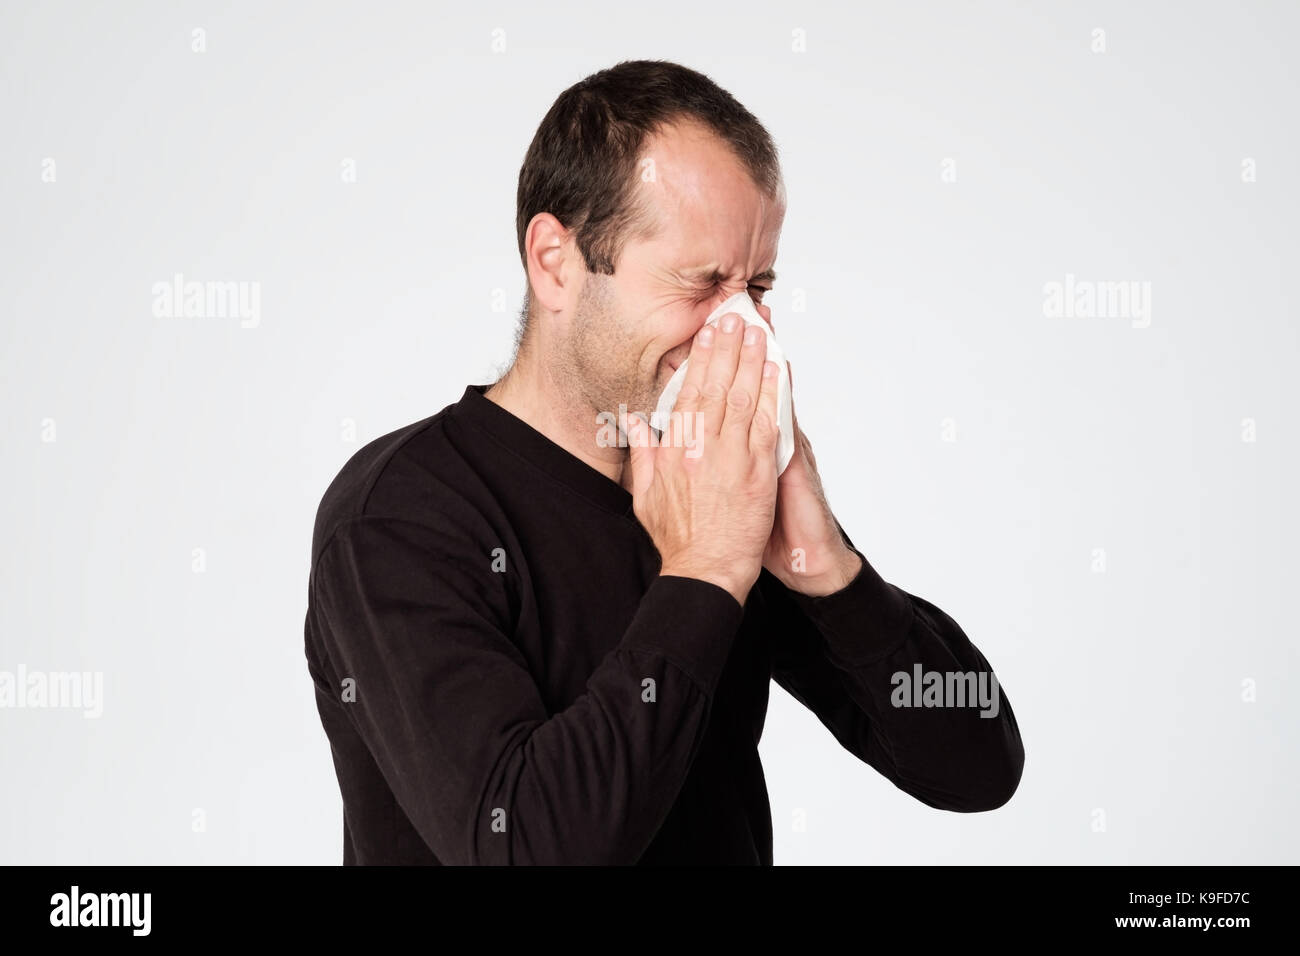 Mature man is ill from colds or pneumonia, sneezing in napkin. Suffering from flu virus. - Stock Image